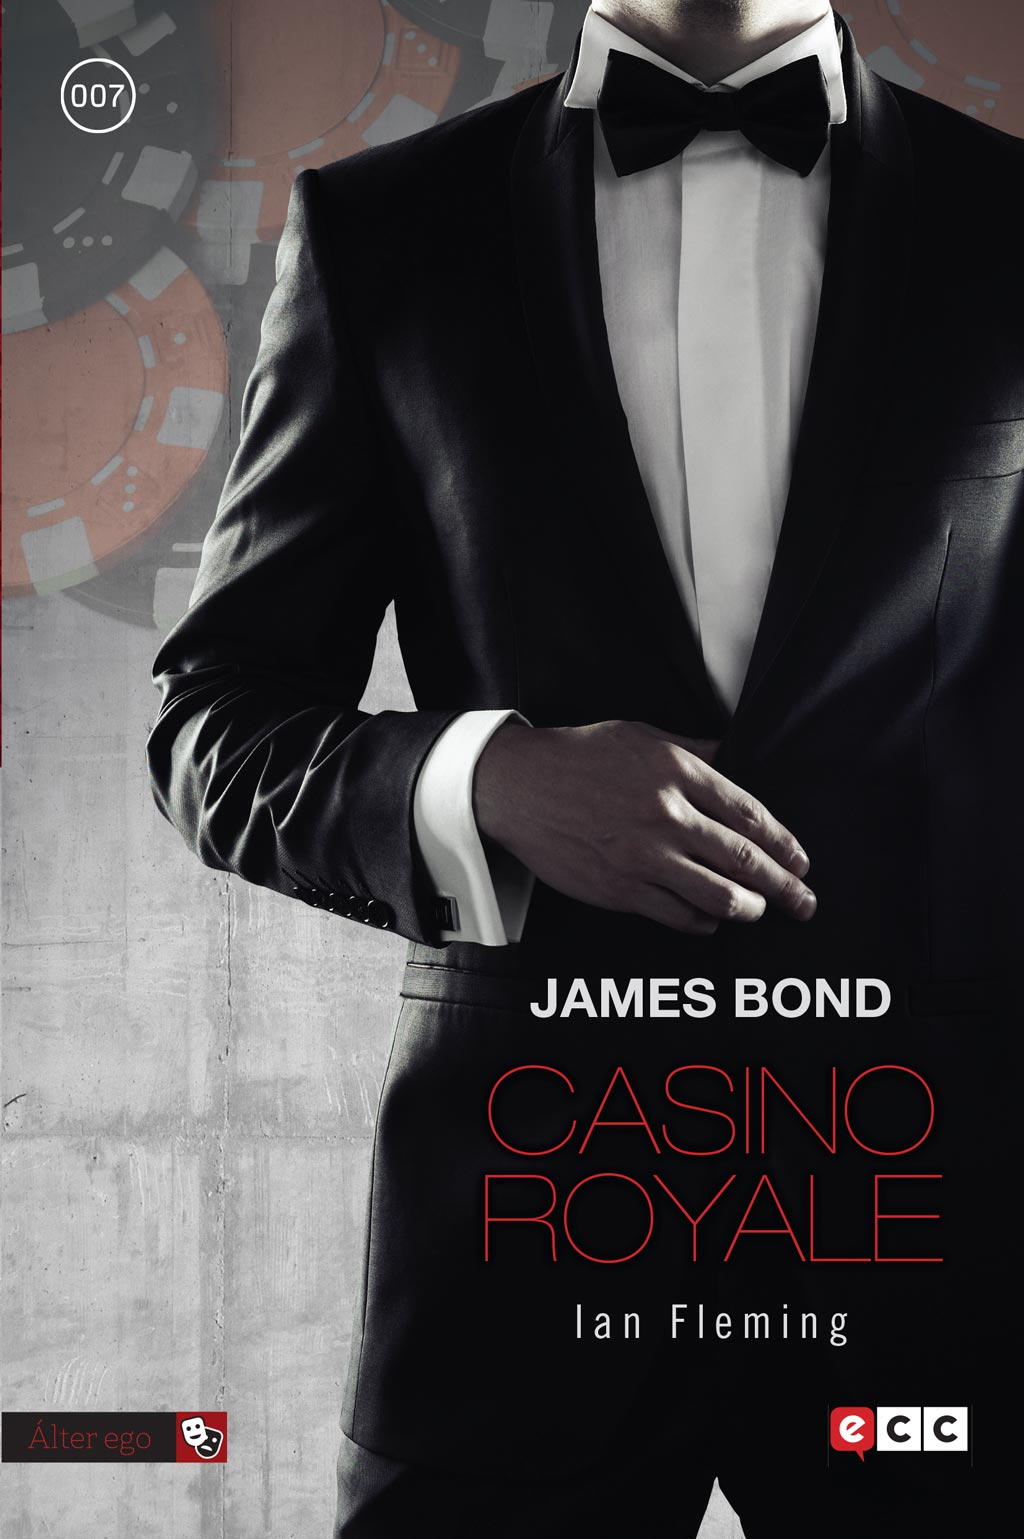 james bond casino royal überschlag